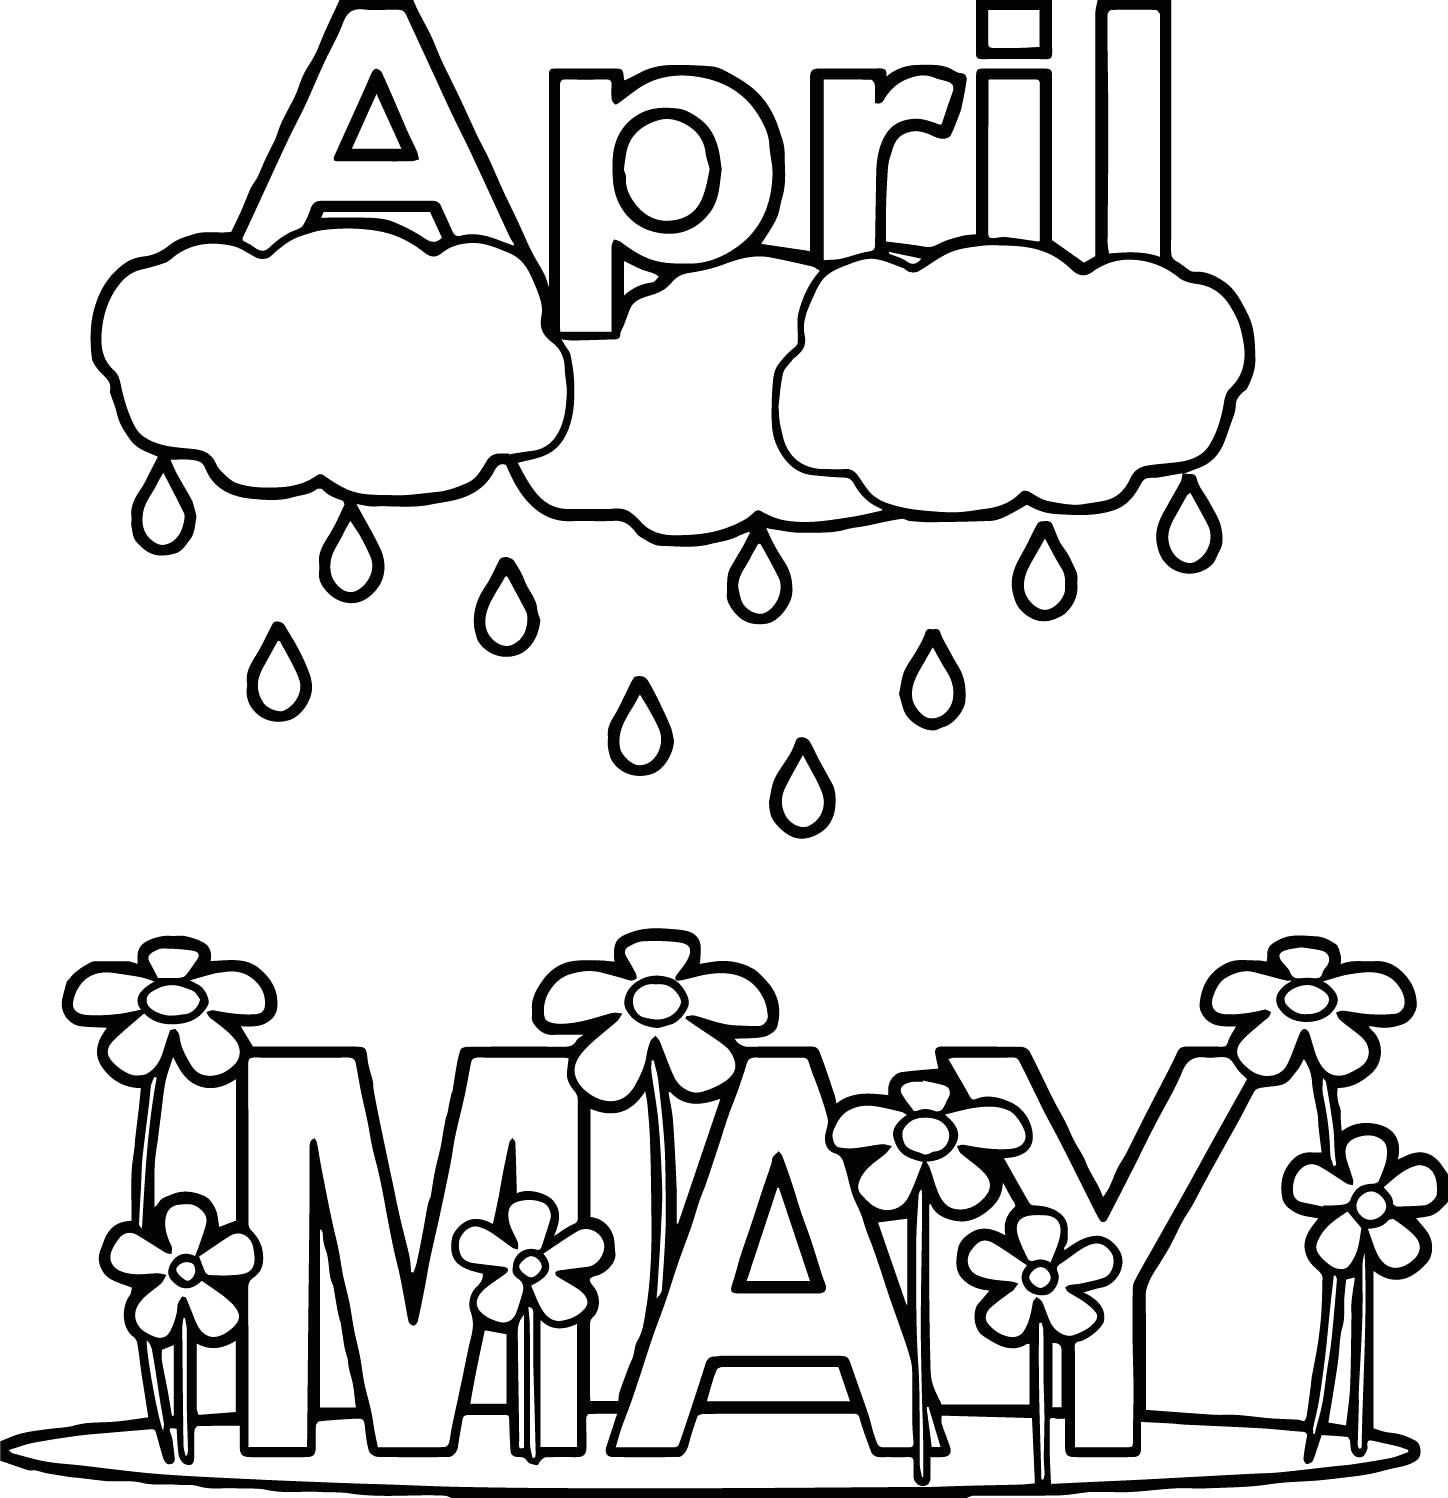 April Showers Bring May Flowers Coloring Page Nice April Shower May Rain Flower Coloring Page